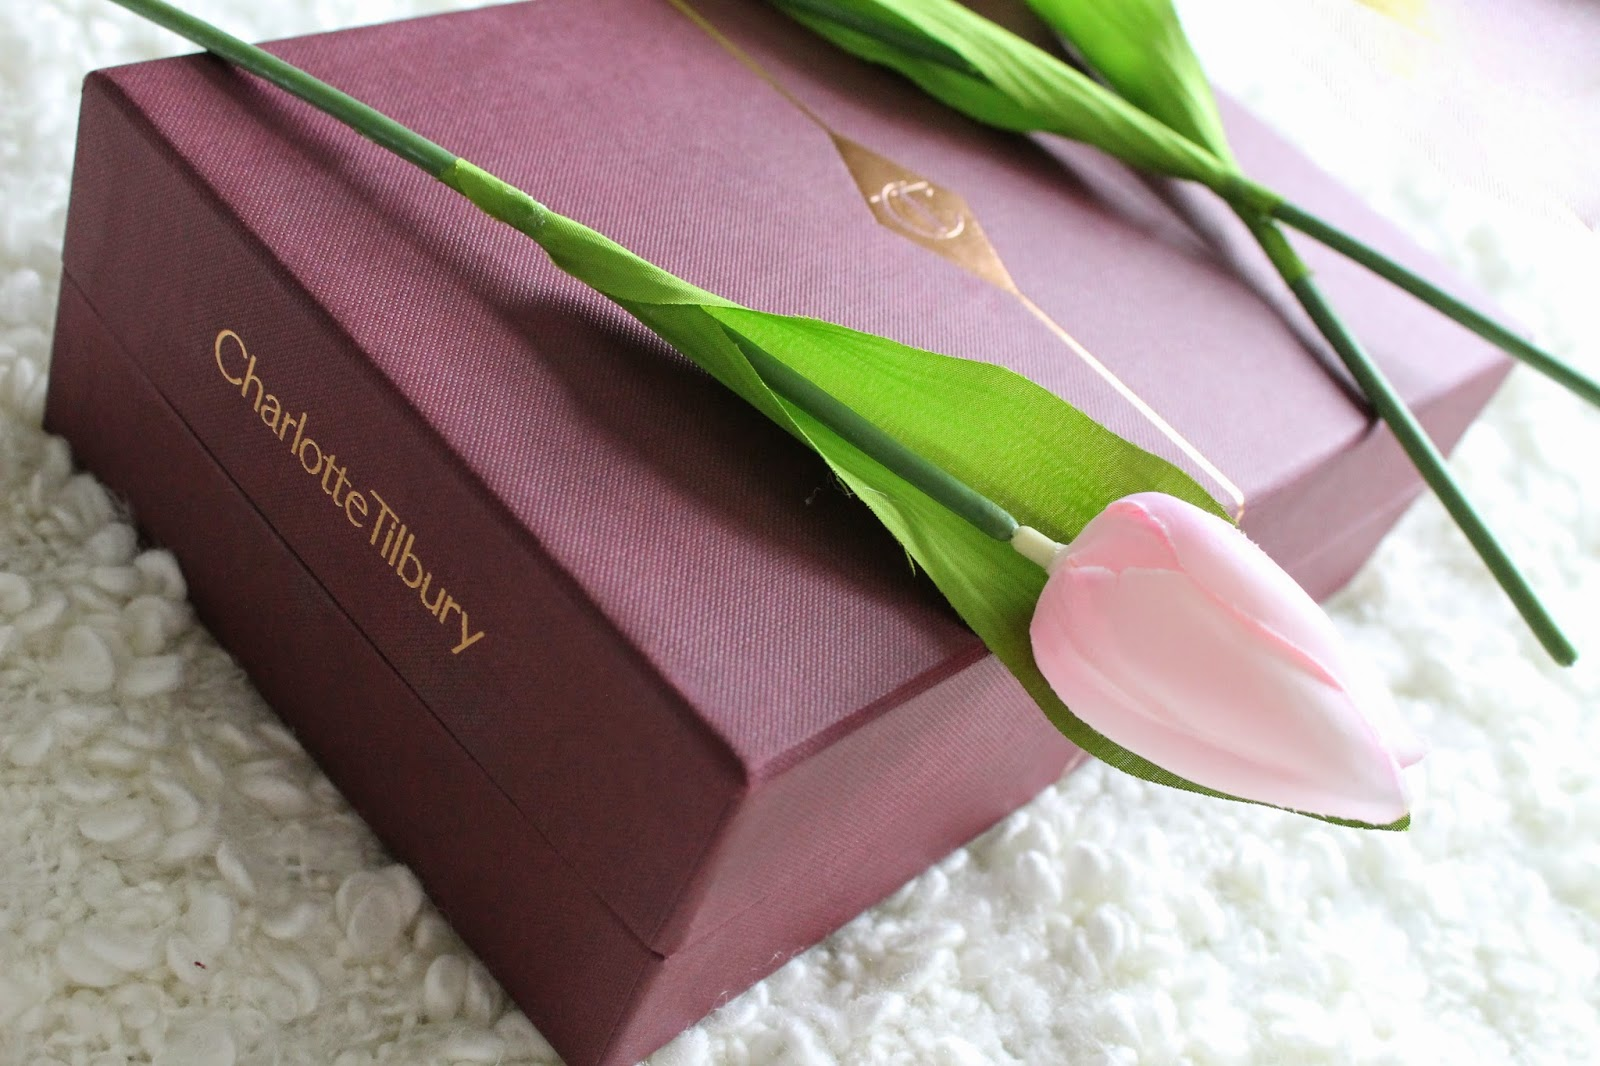 Charlotte Tilbury The Ingenue Look Box